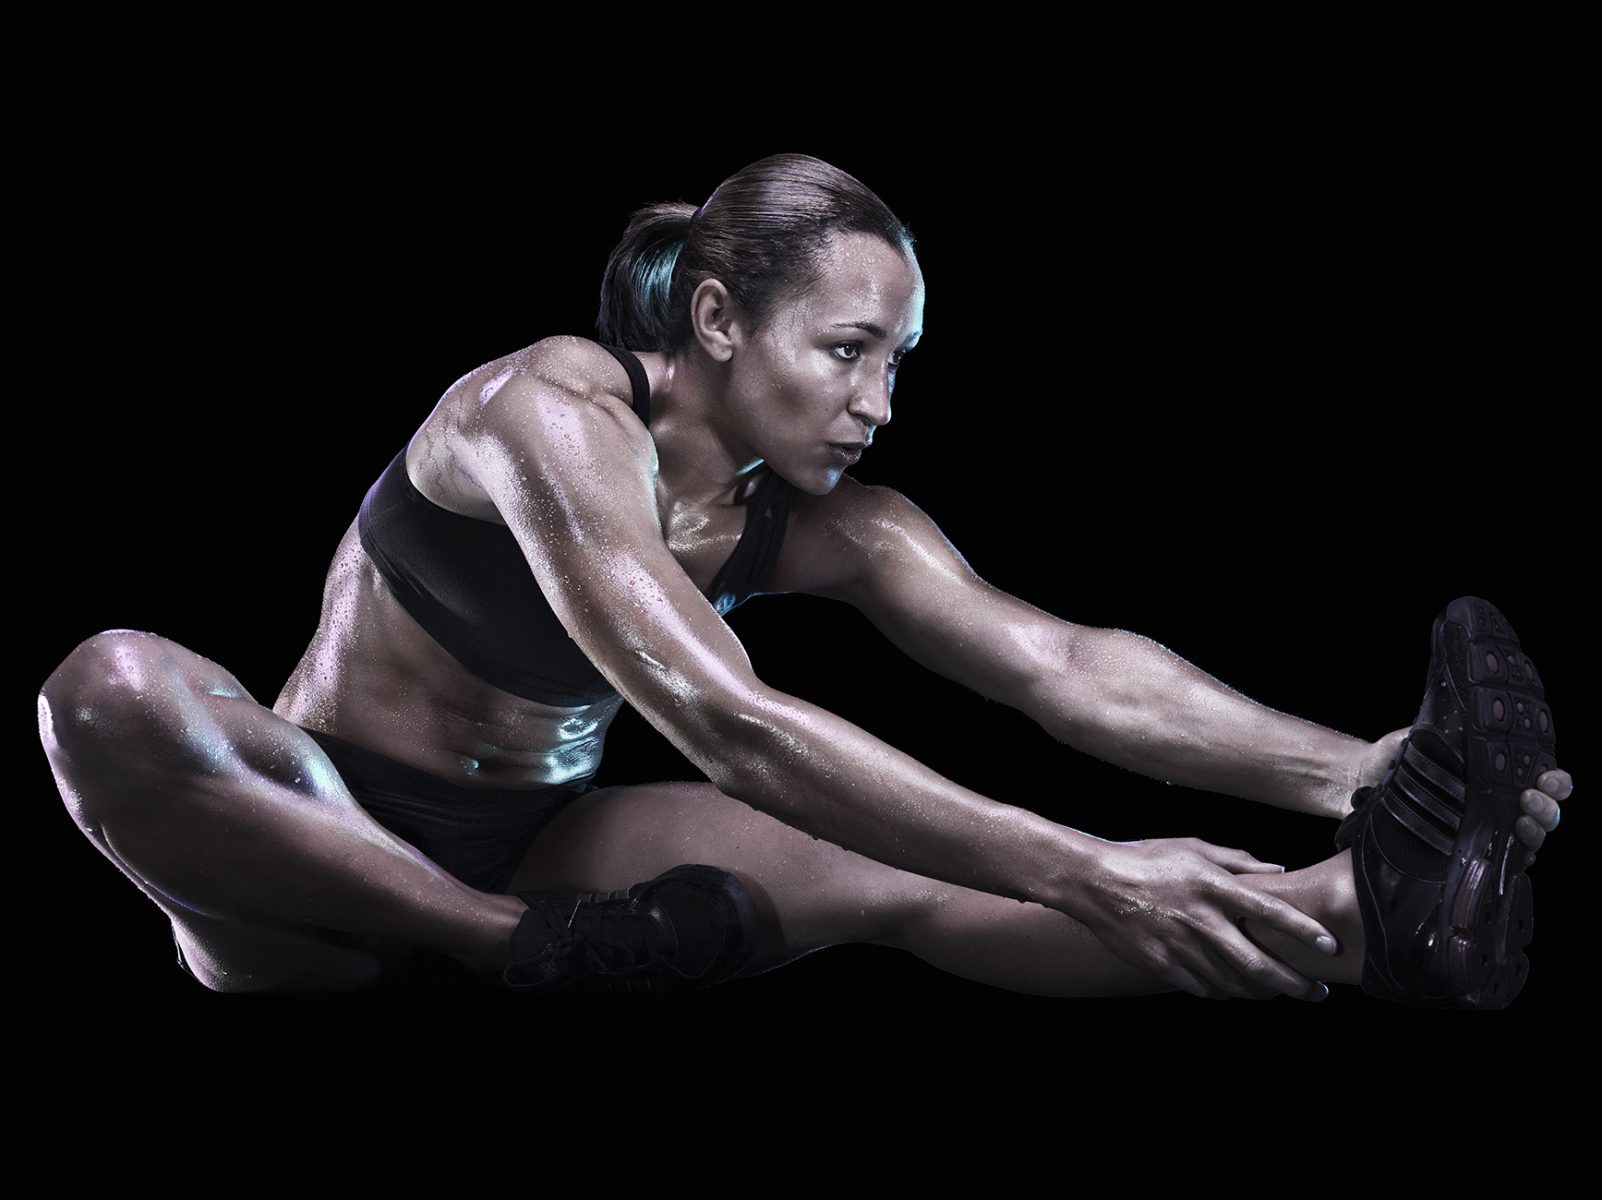 Powerade Jessica Ennis